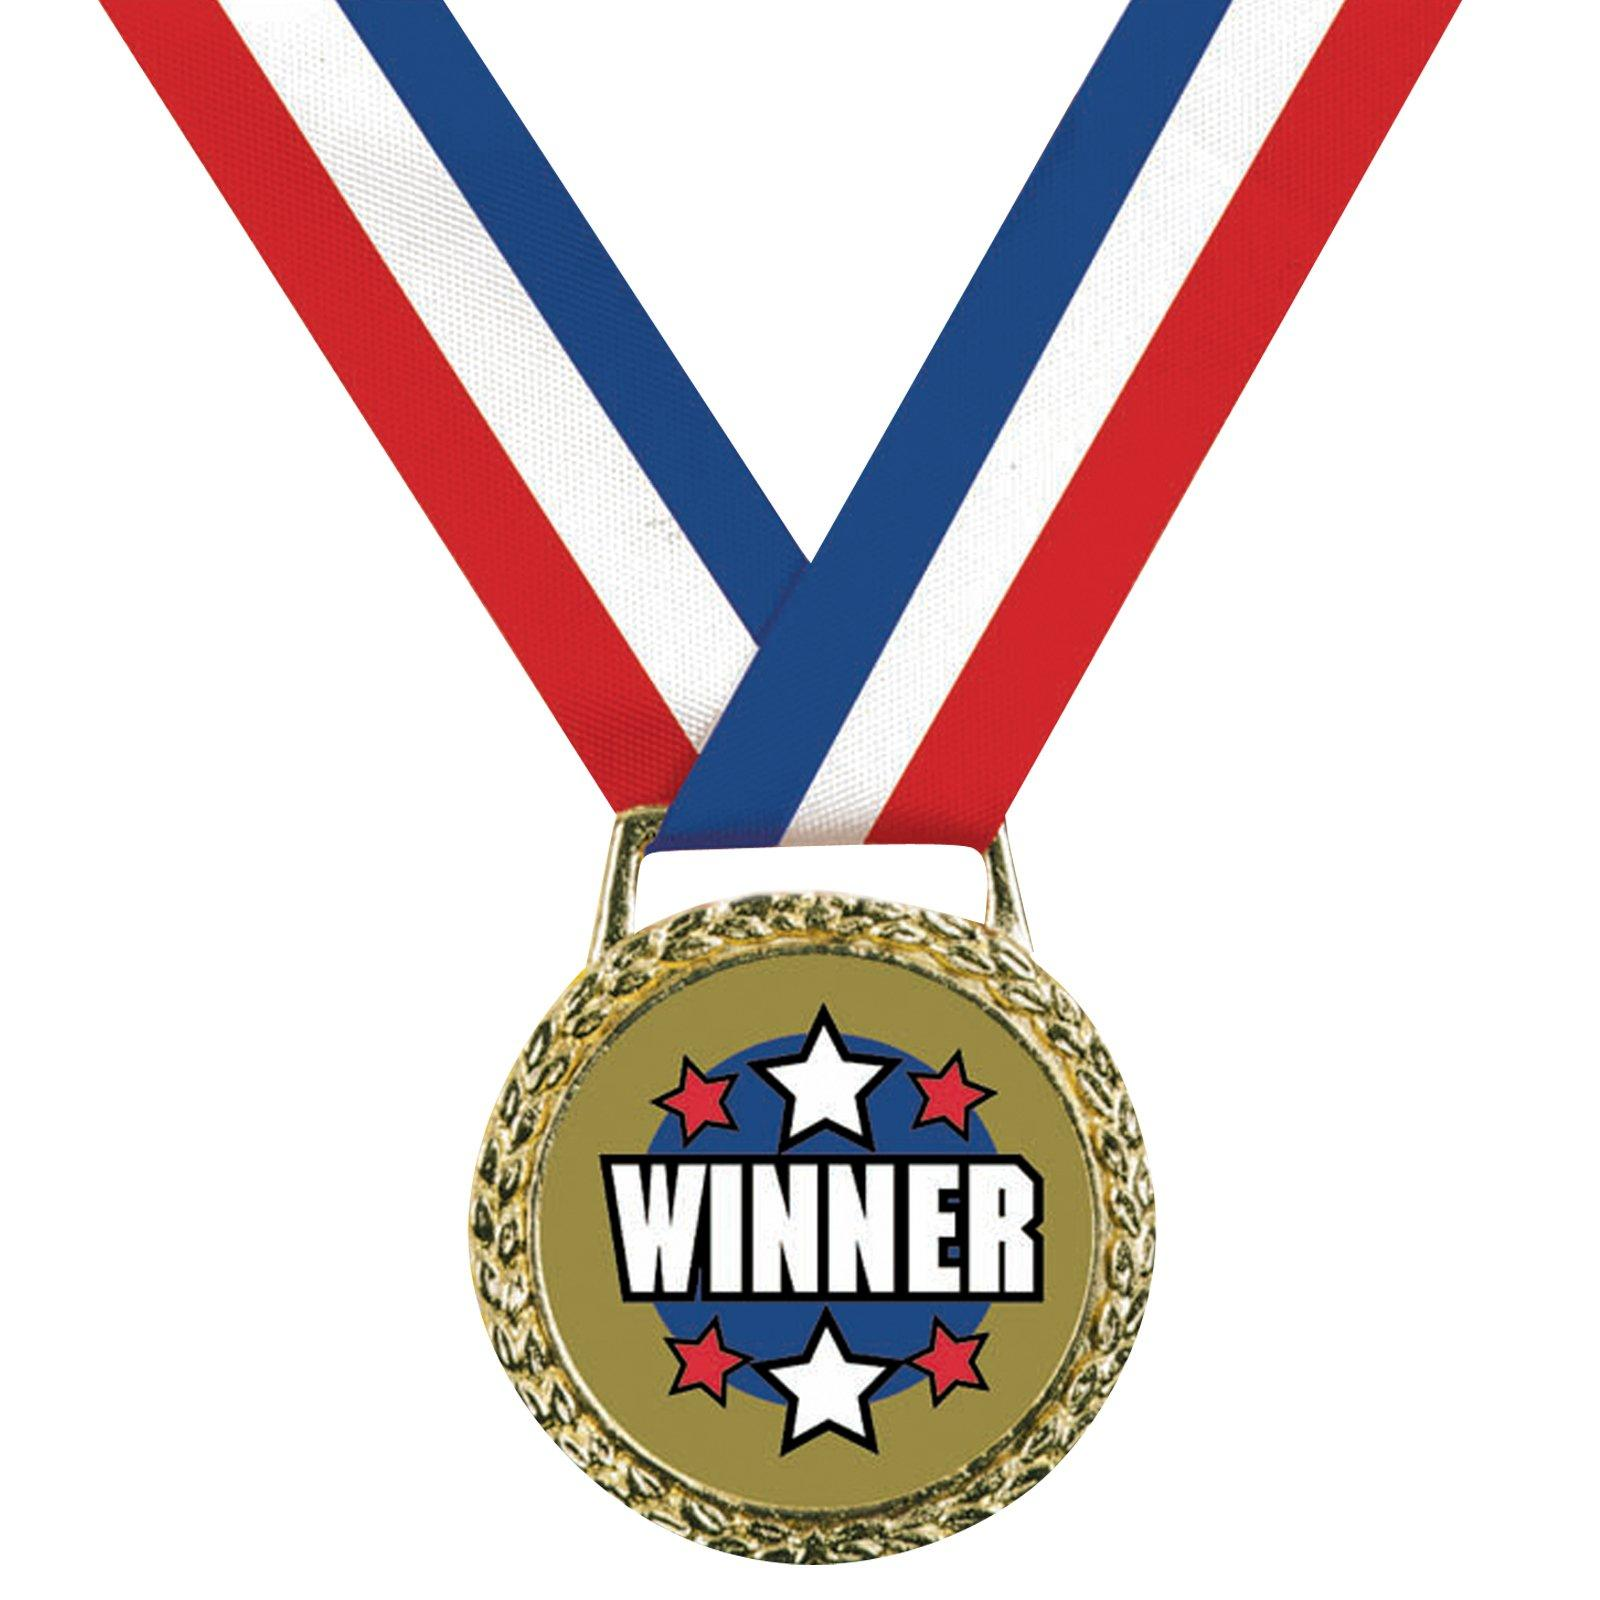 clip art medals free - photo #40